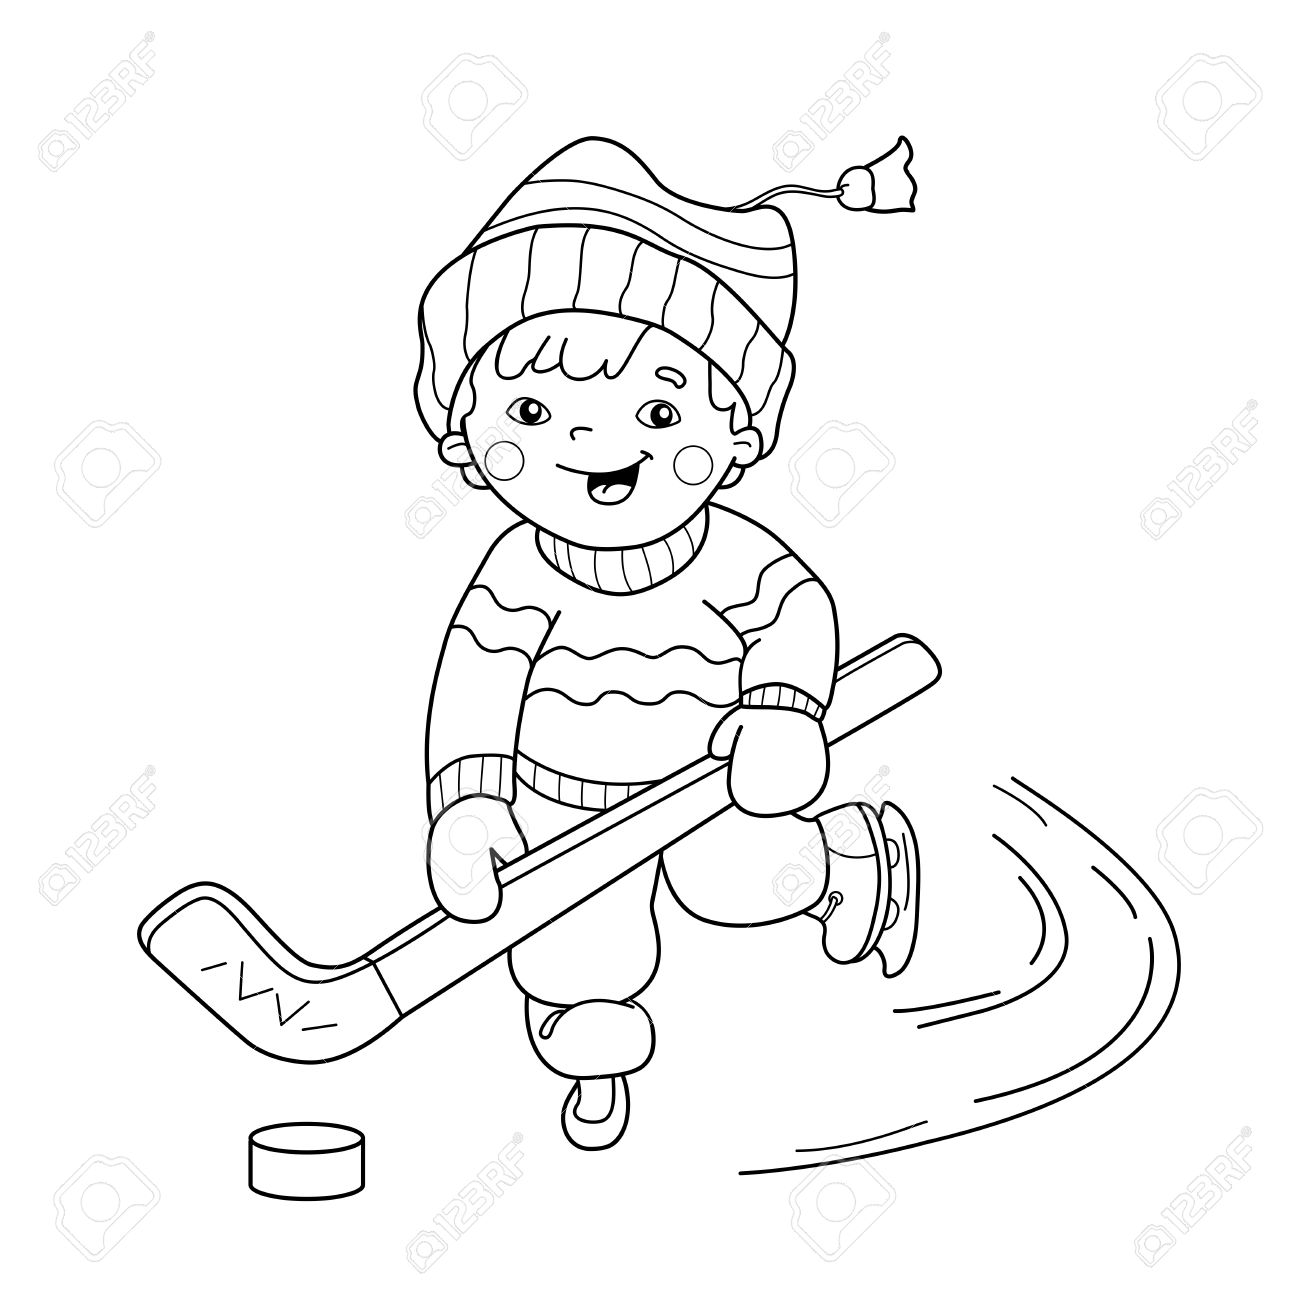 coloring page outline of cartoon boy playing hockey winter sports